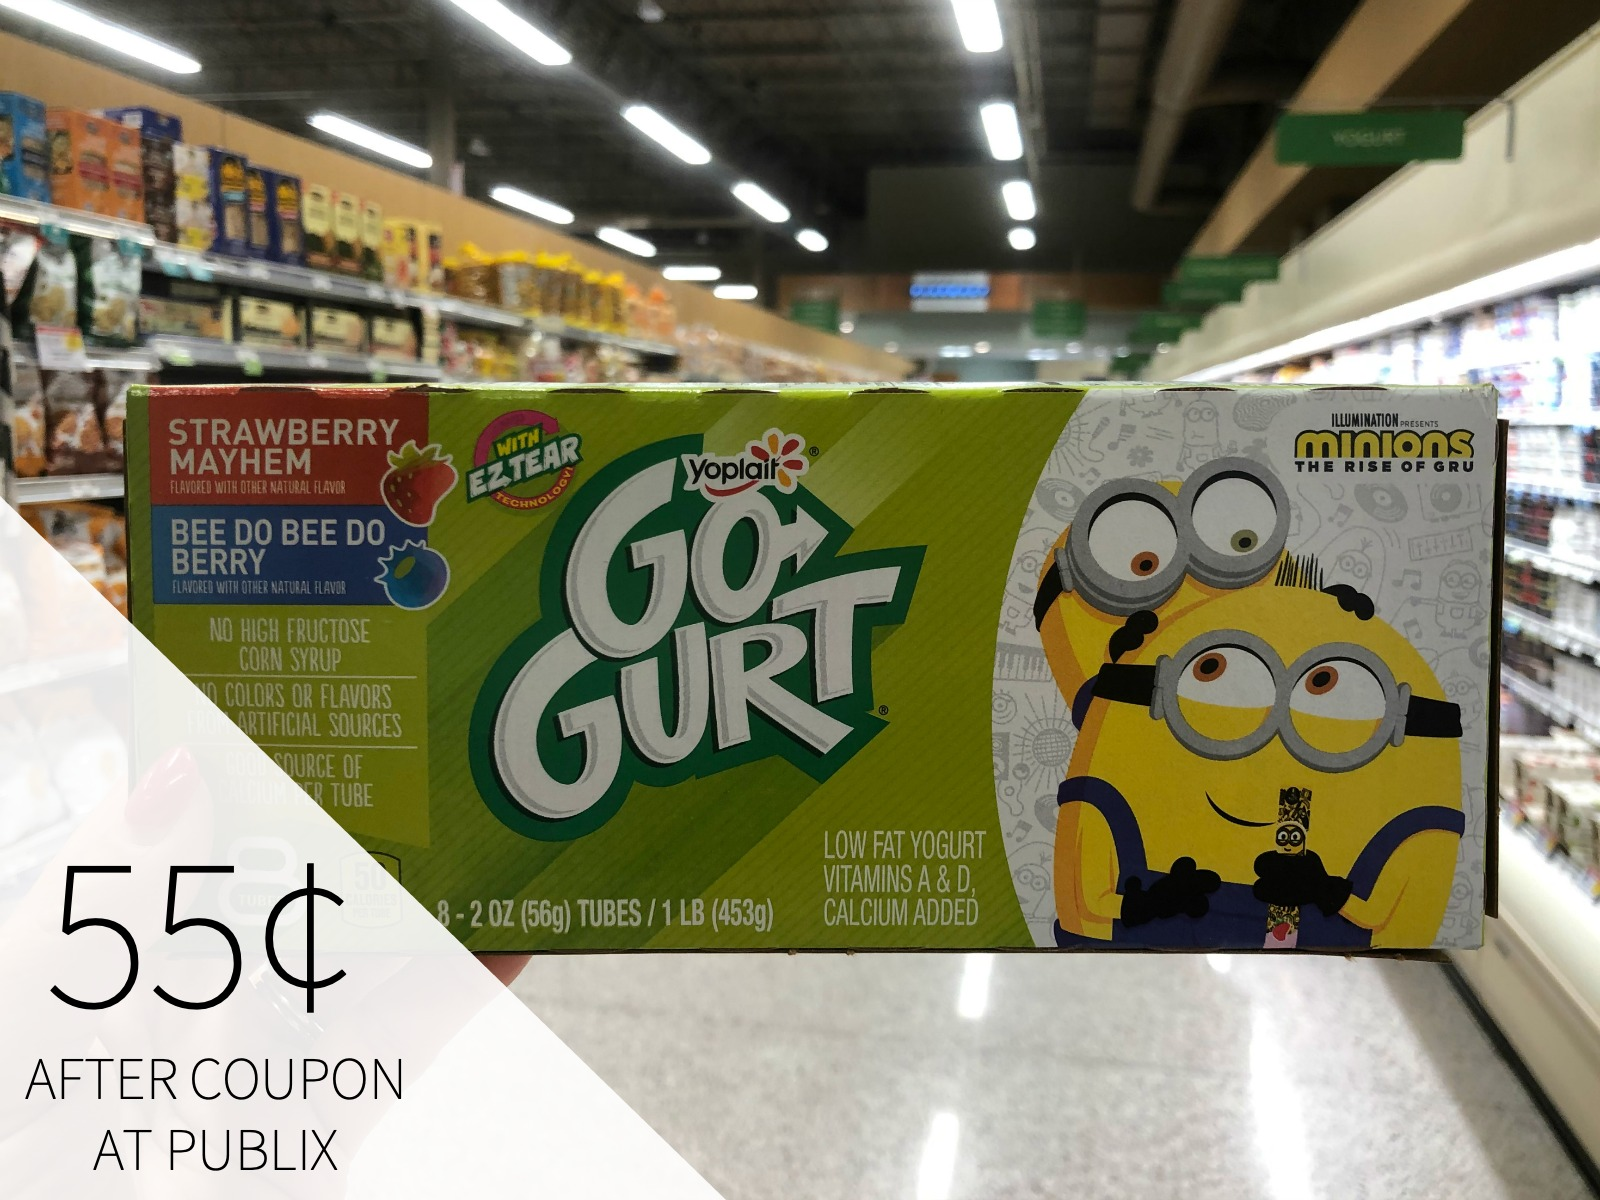 Yoplait Go-Gurt Only 55¢ At Publix on I Heart Publix